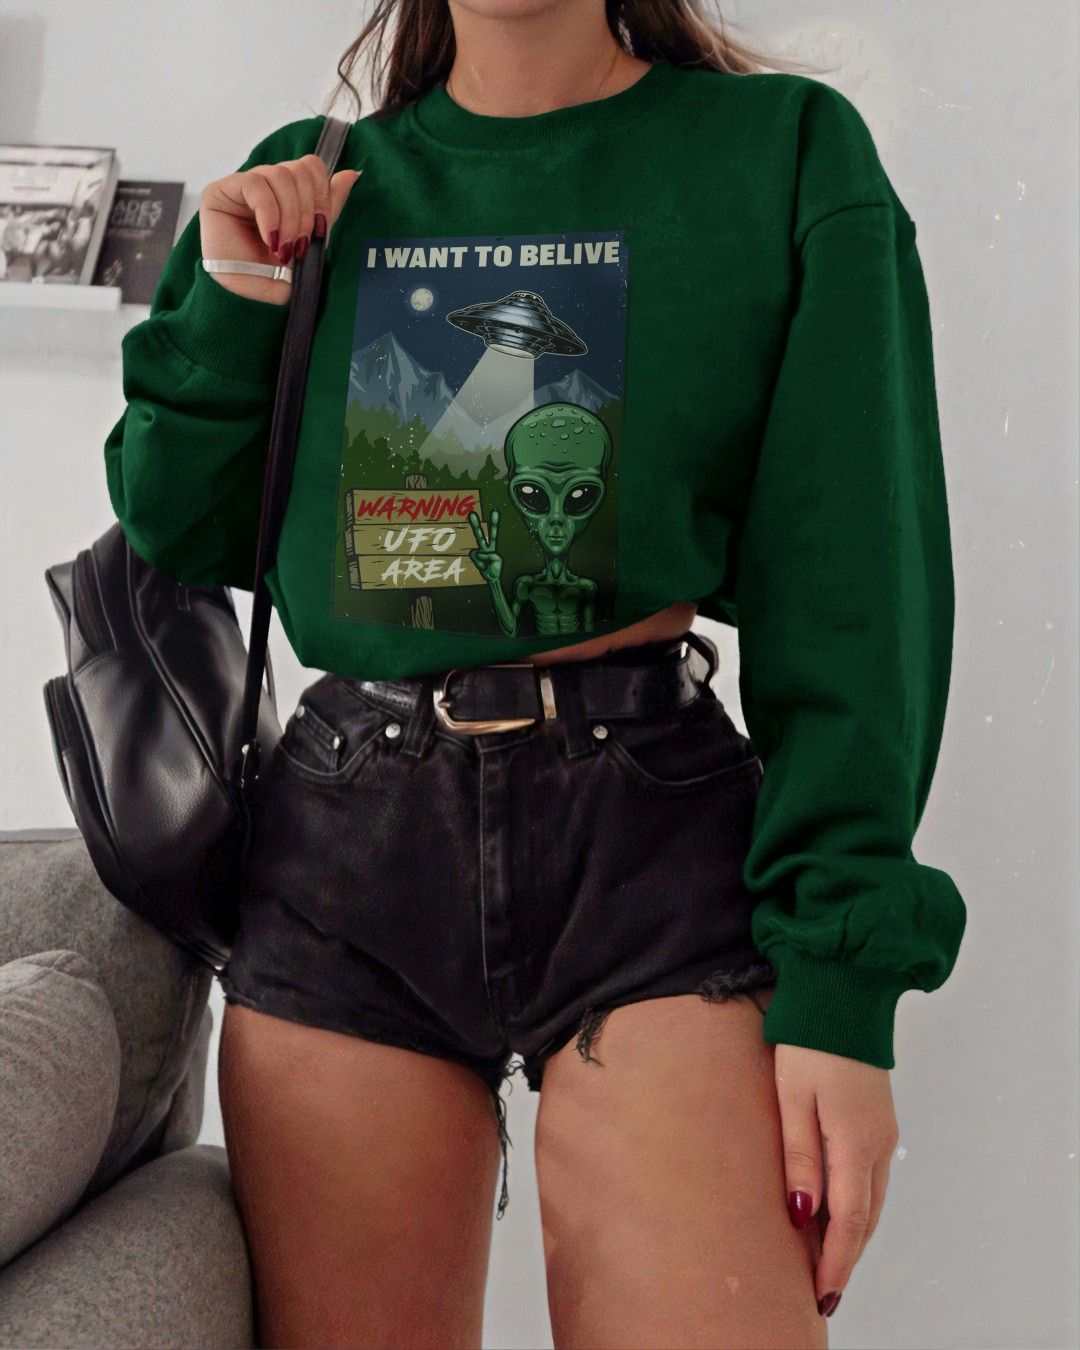 UFO Area Sweatshirt